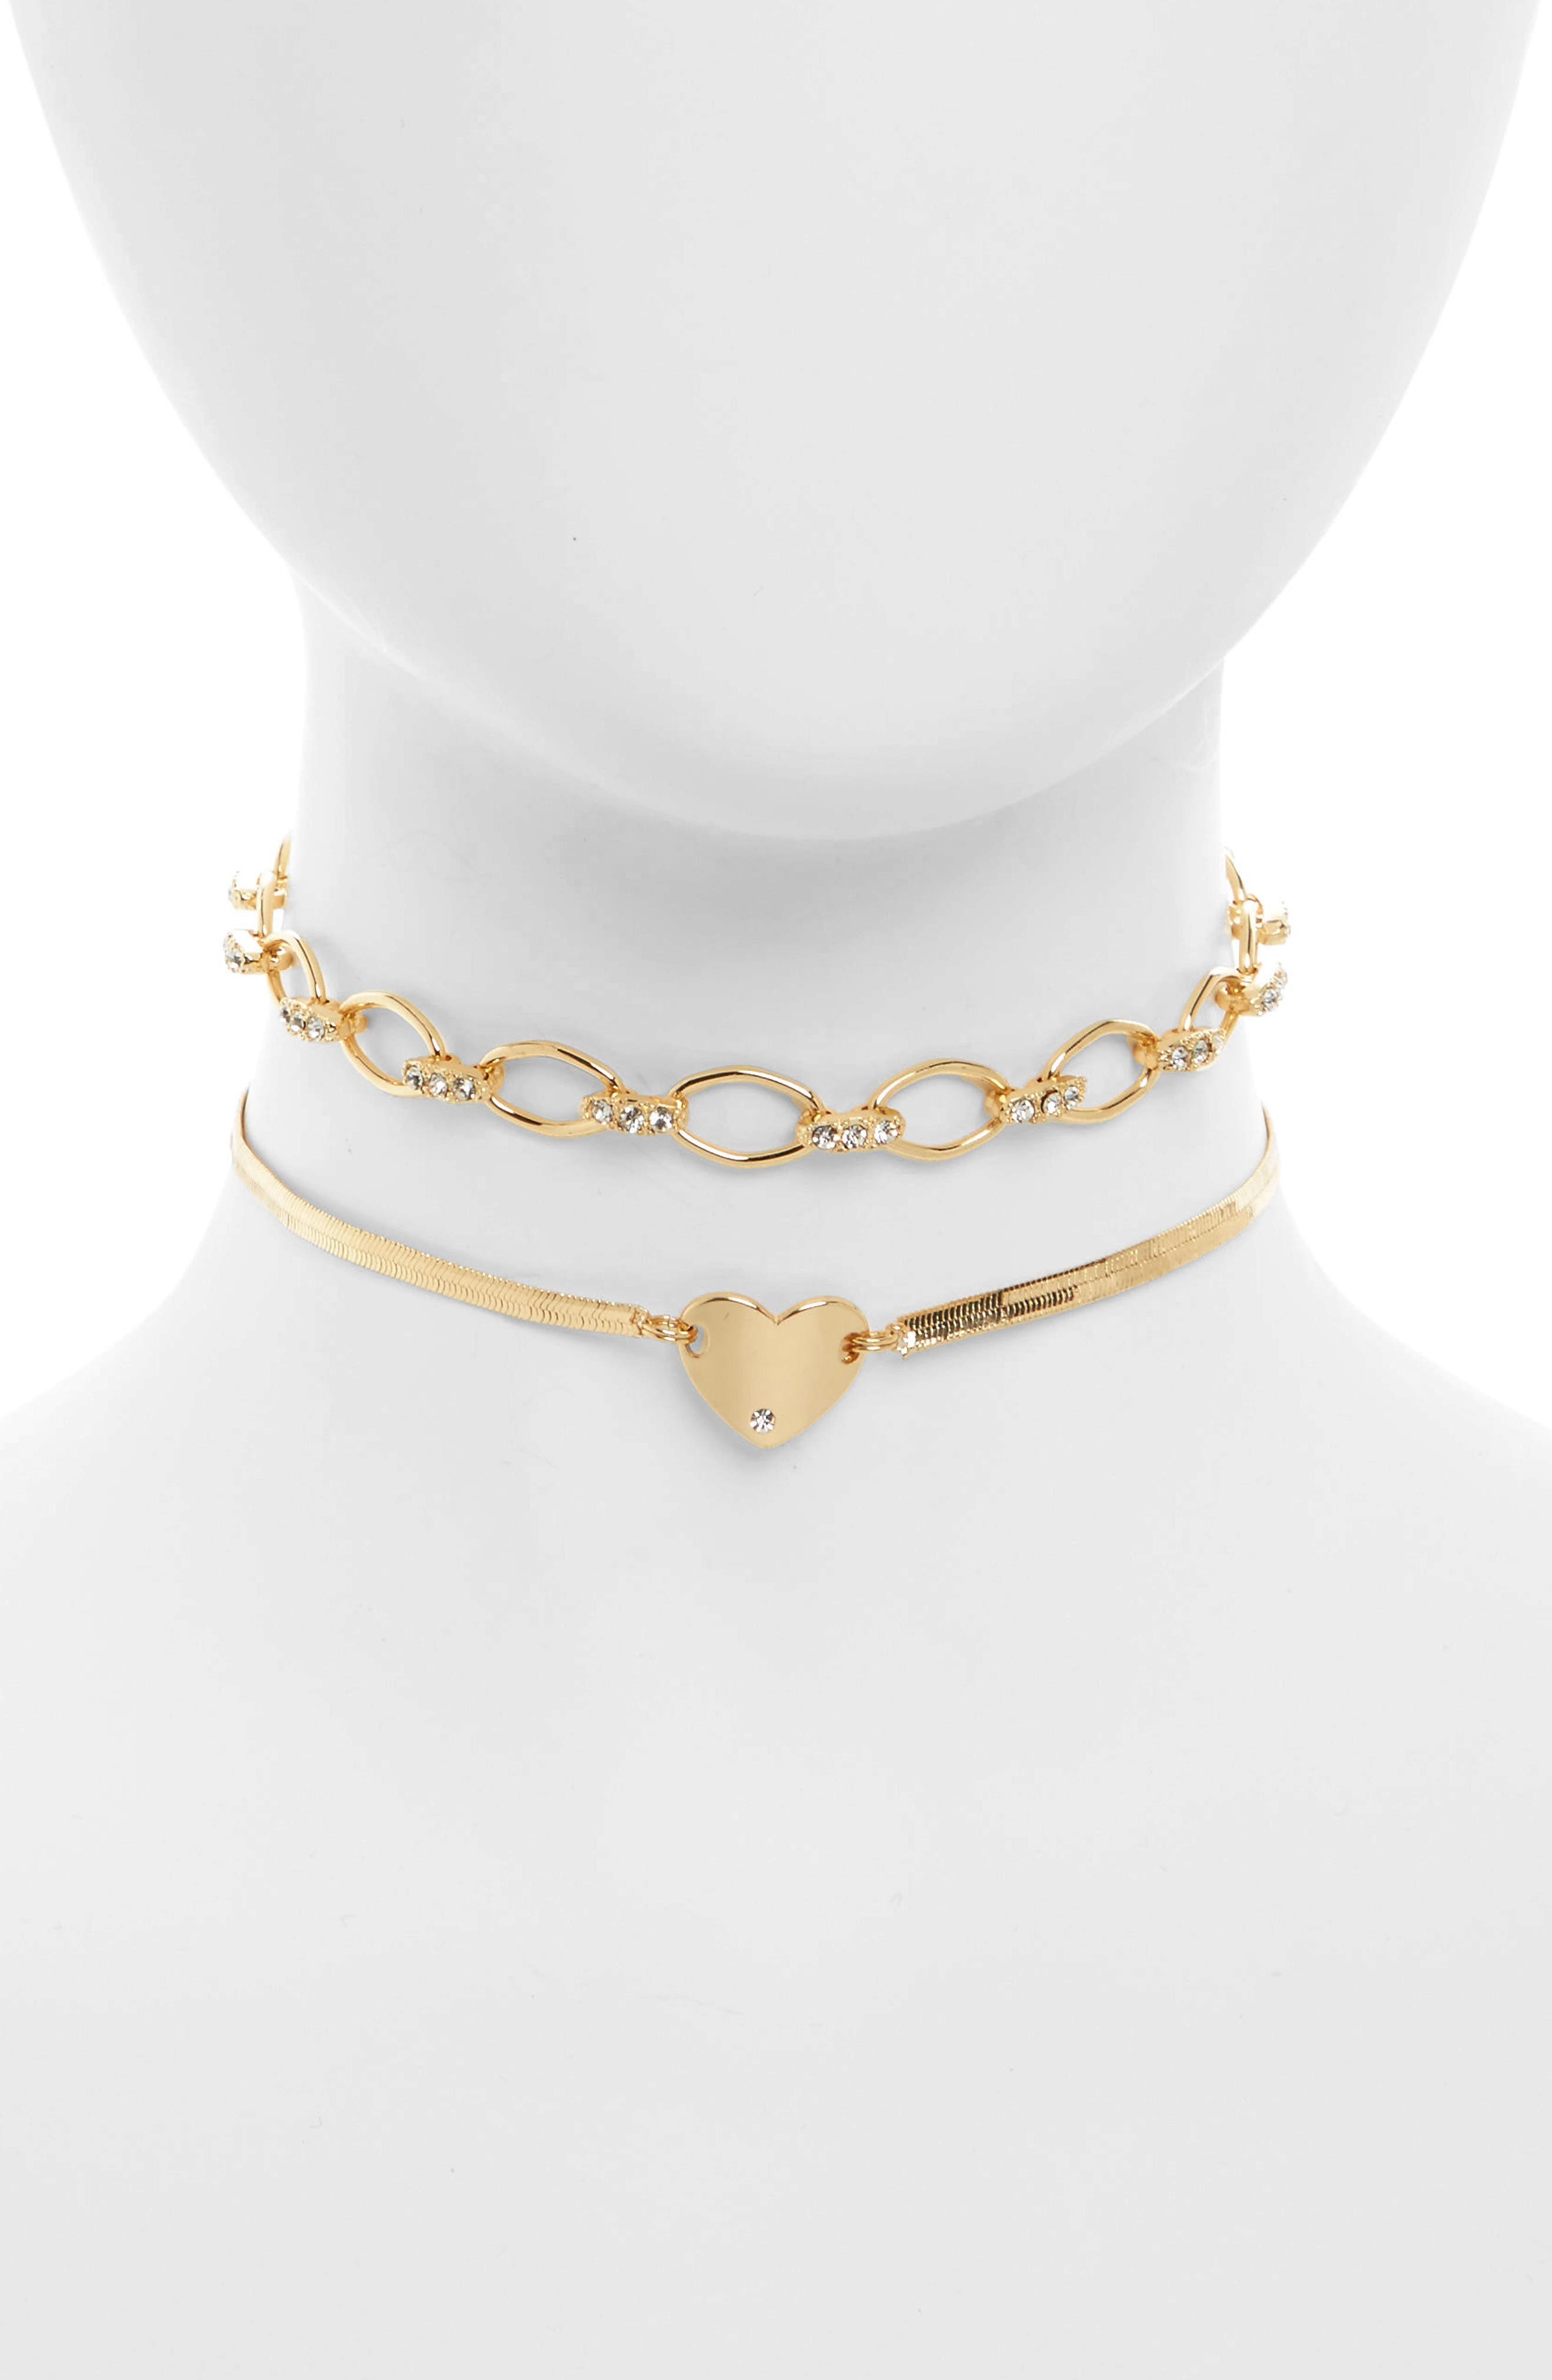 2-Pack Heart & Crystal Chain Chokers,                         Main,                         color, Gold/ Crystal